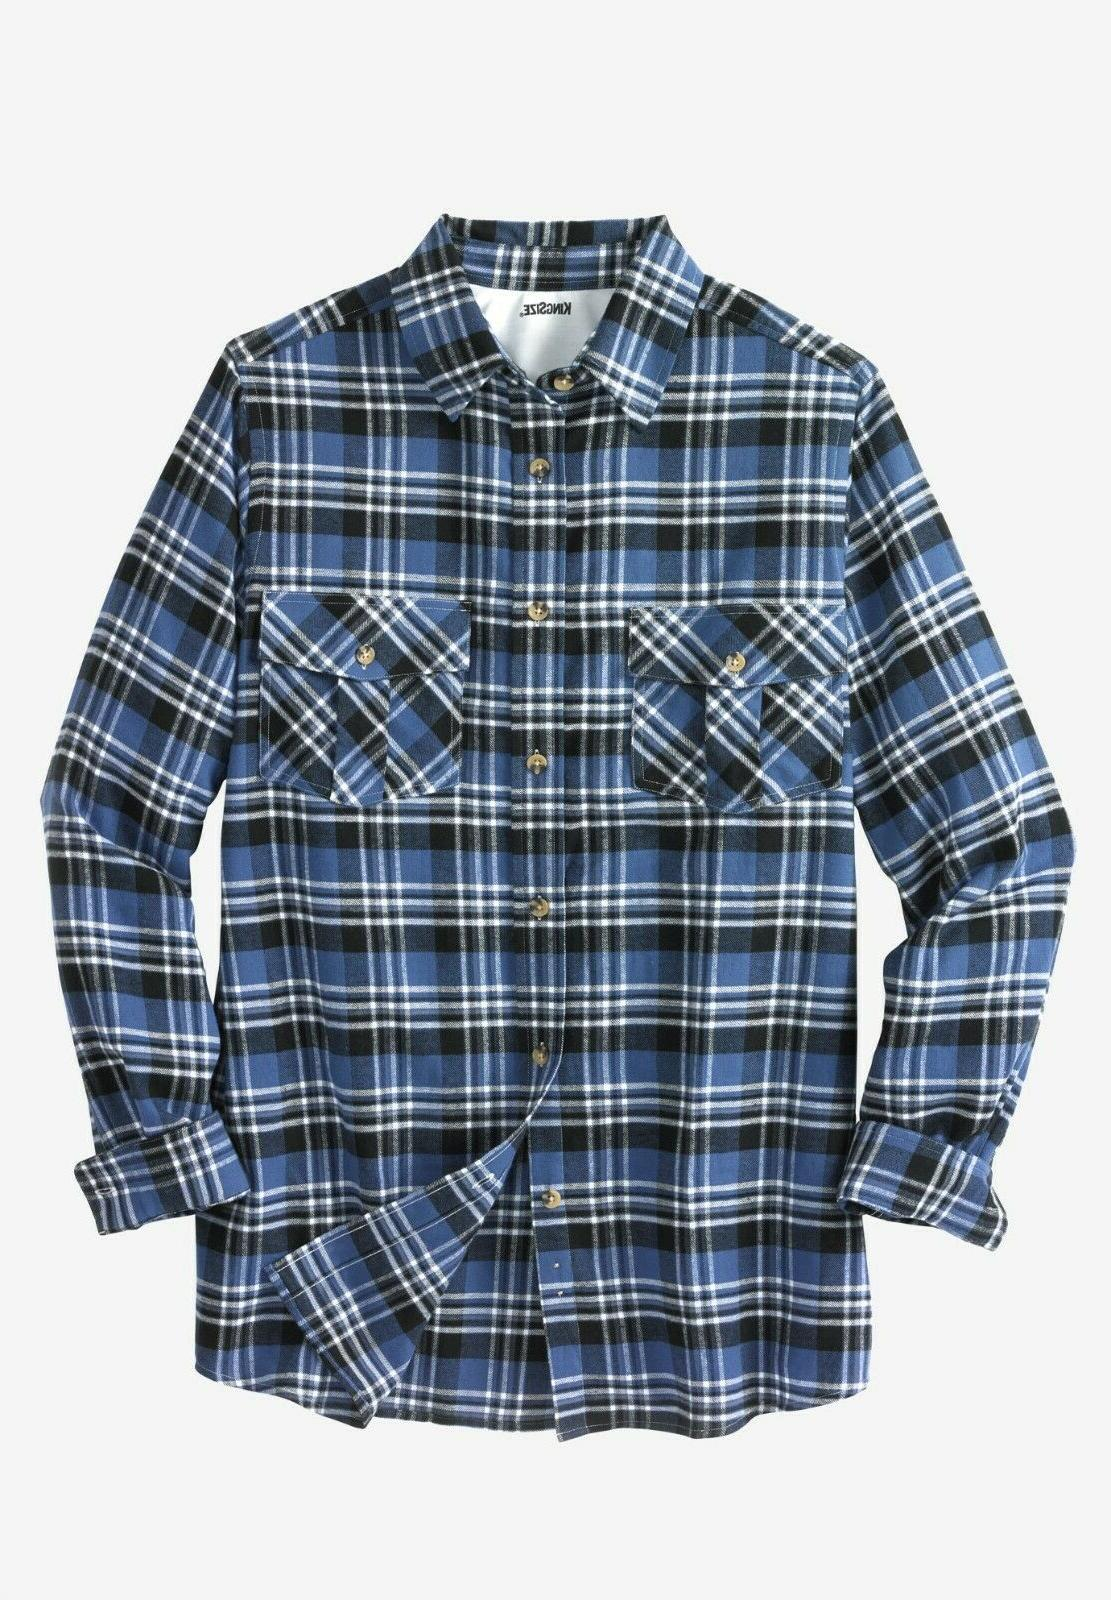 Mens Shirts Tall 4 colors choose from NEW!!